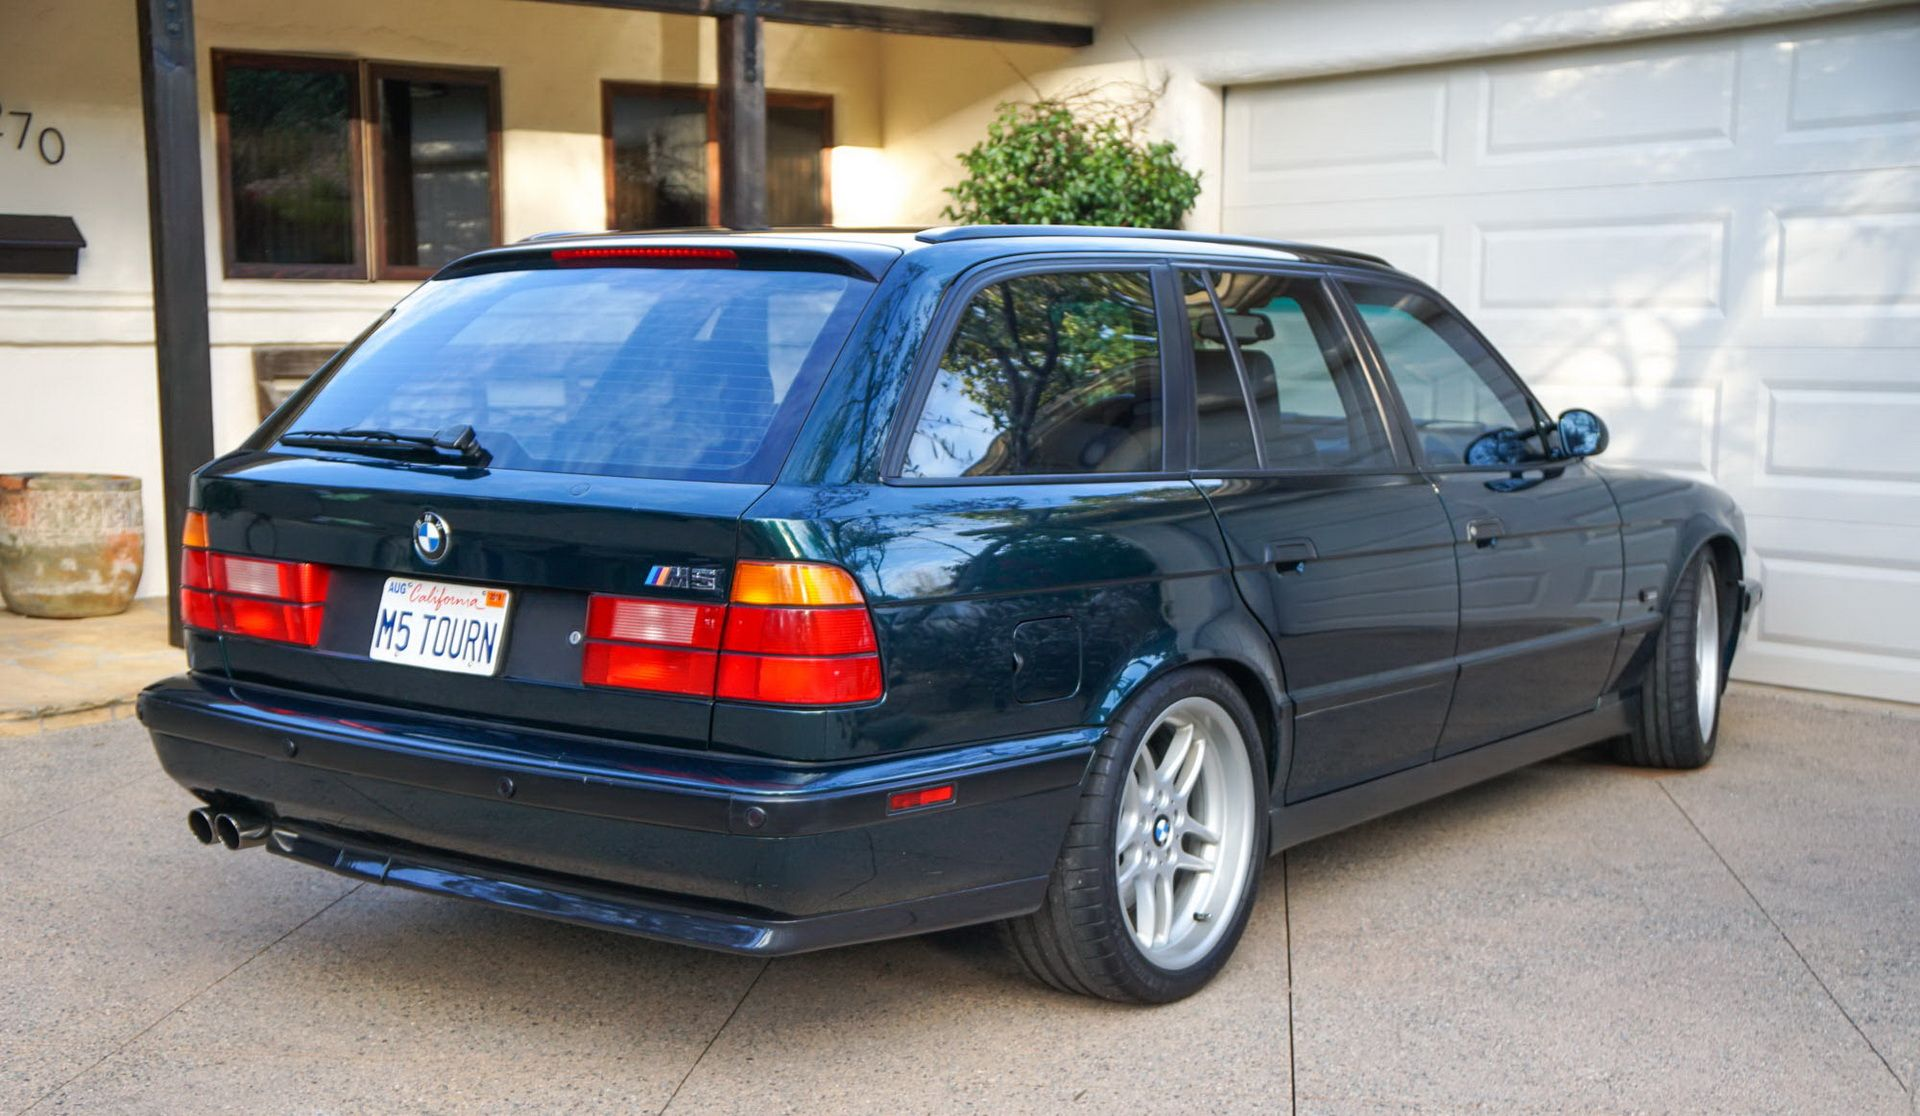 E34 BMW M5 Touring for sale (5)